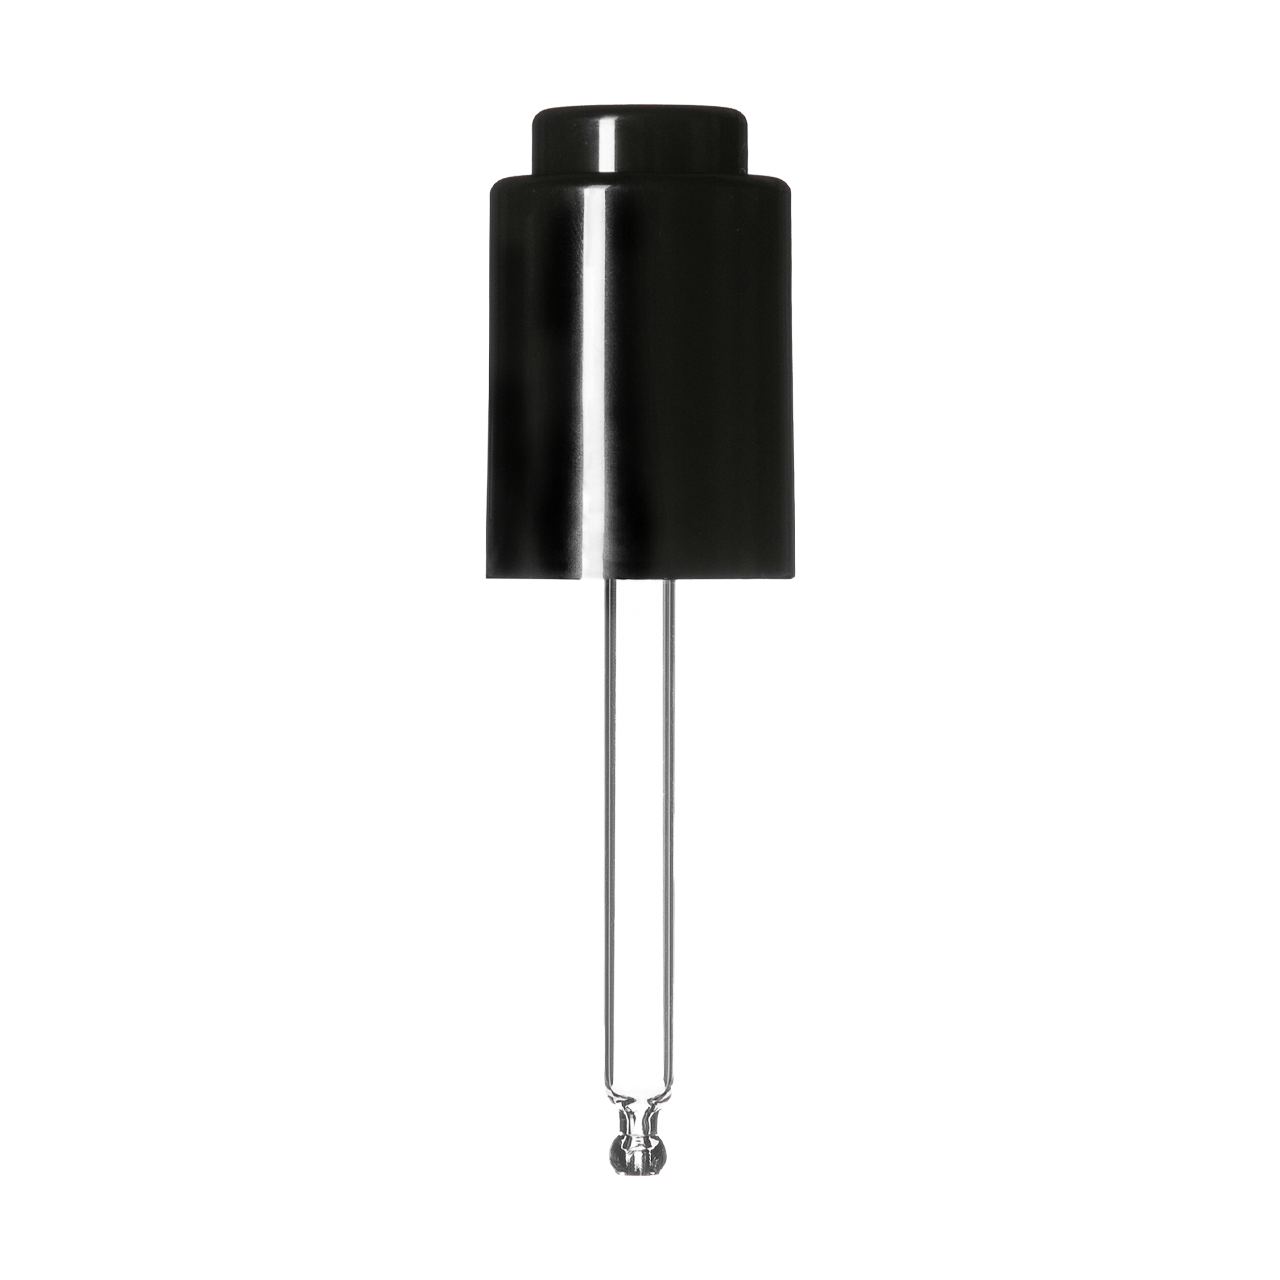 Push-button pipette 18/415, PP, black smooth, black button 0.4 ml, ball tip, straight (for Virgo 30 ml)